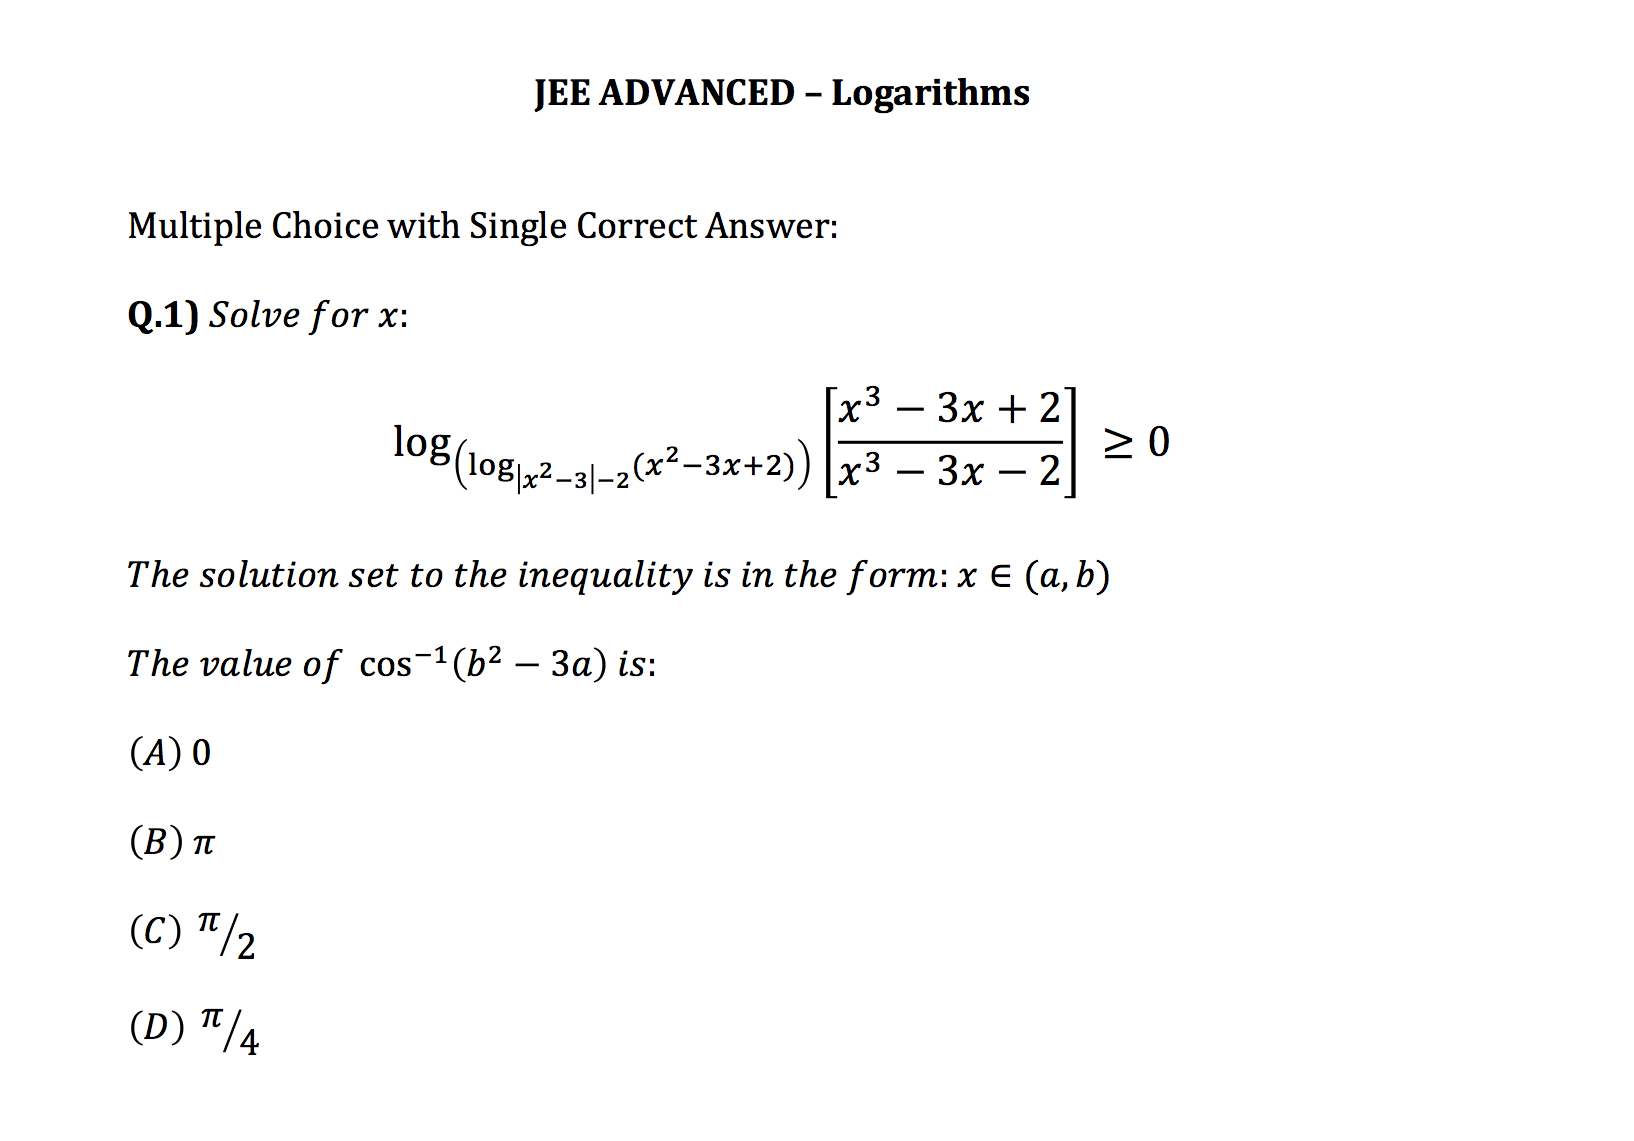 Jee Advanced Question on Logarithms  Please Solve for x: